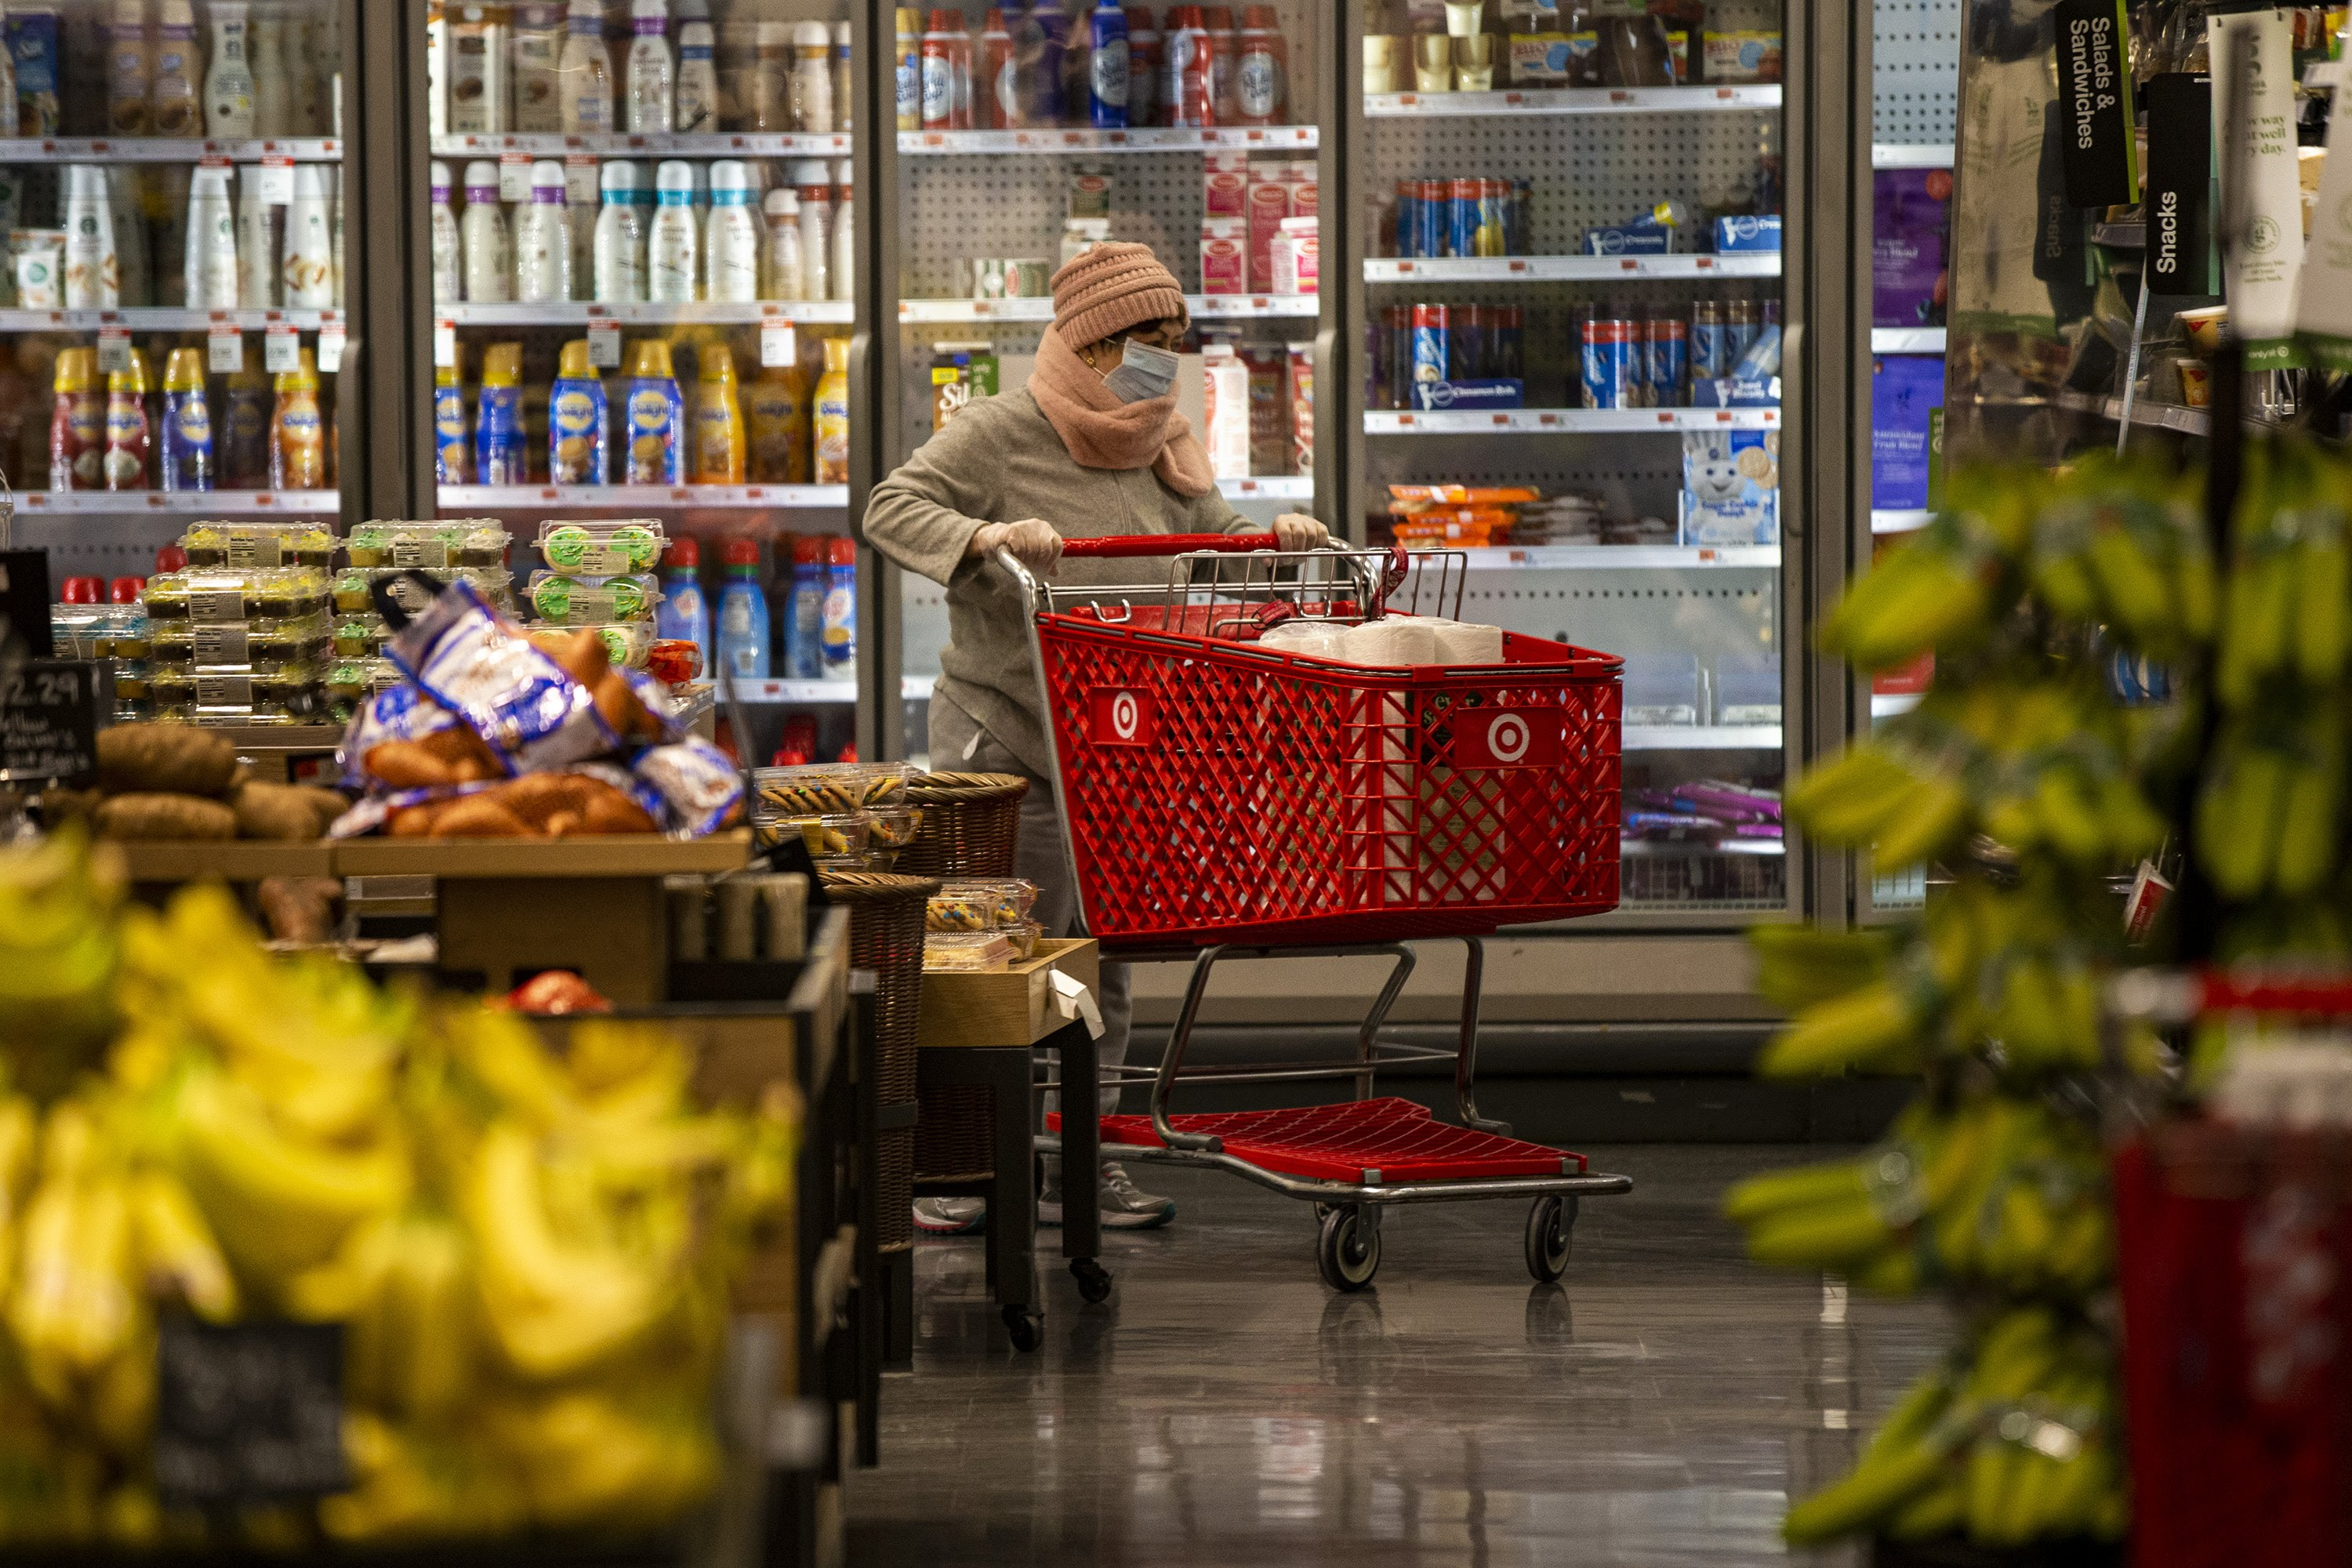 A woman wears a face mask shopping at Target in Watertown. (Jesse Costa/WBUR)